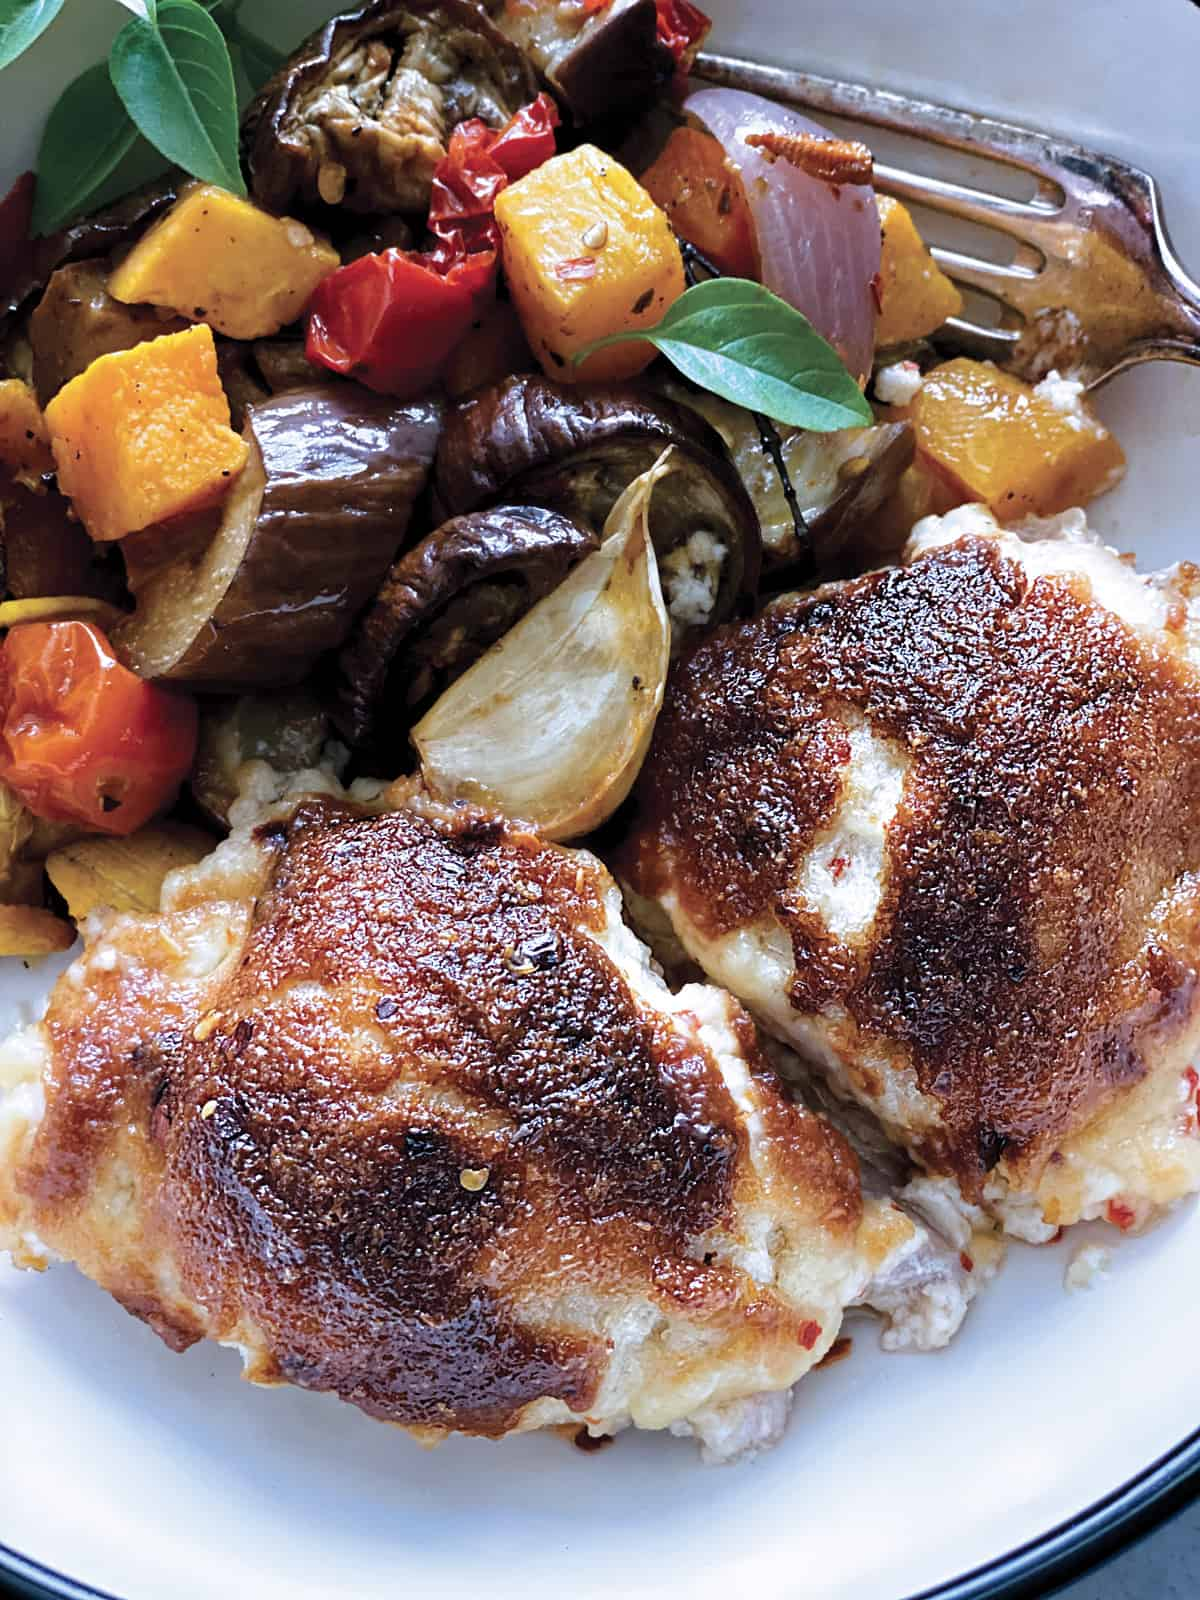 Two pieces of parmesan crusted chicken with mayo and vegetables on a plate, and a fork.